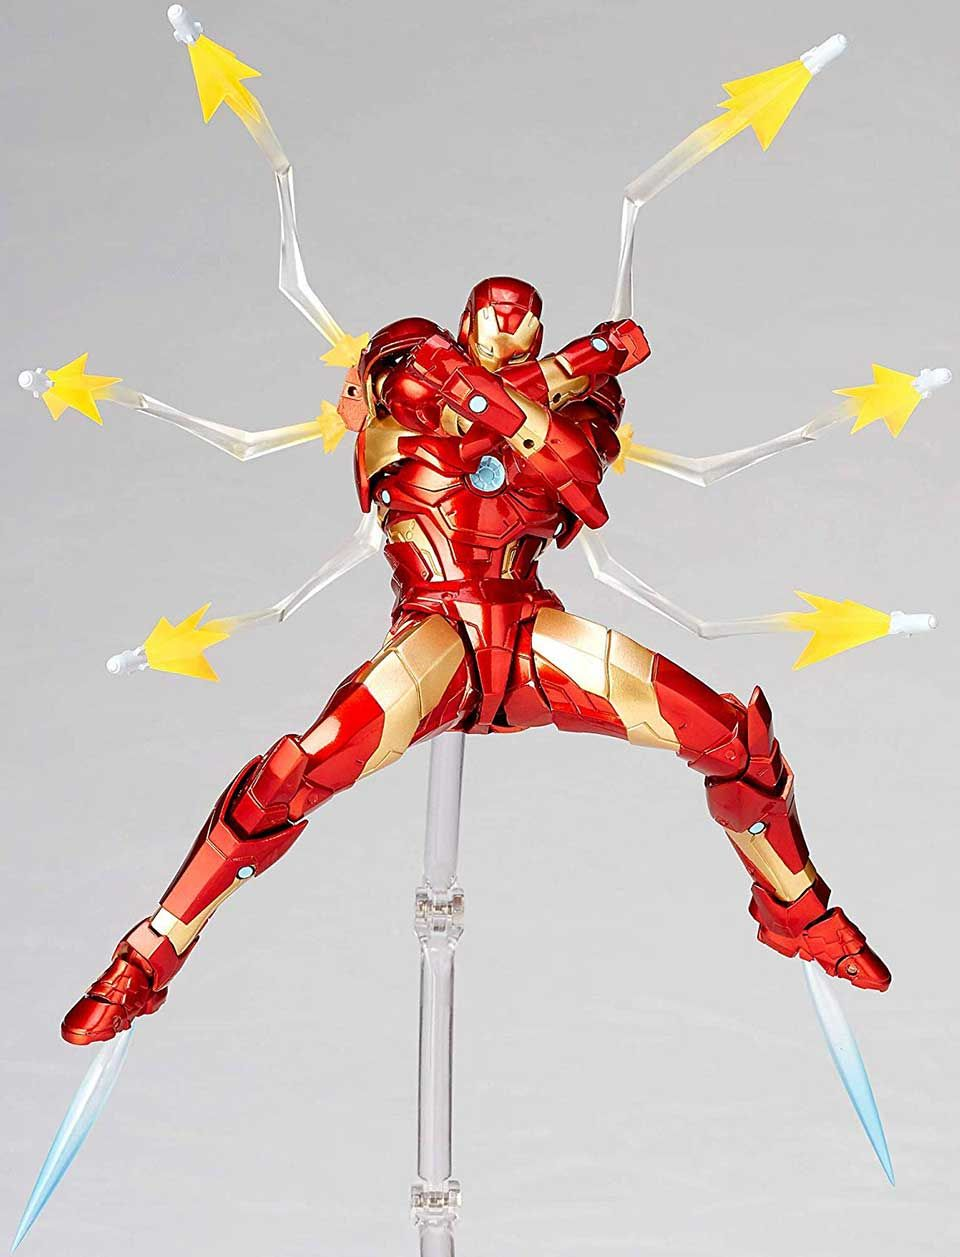 The Amazing Yamaguchi Iron Man Action Figure Is Ready For Poses Iron Man Action Figures Action Figures Iron Man Armor